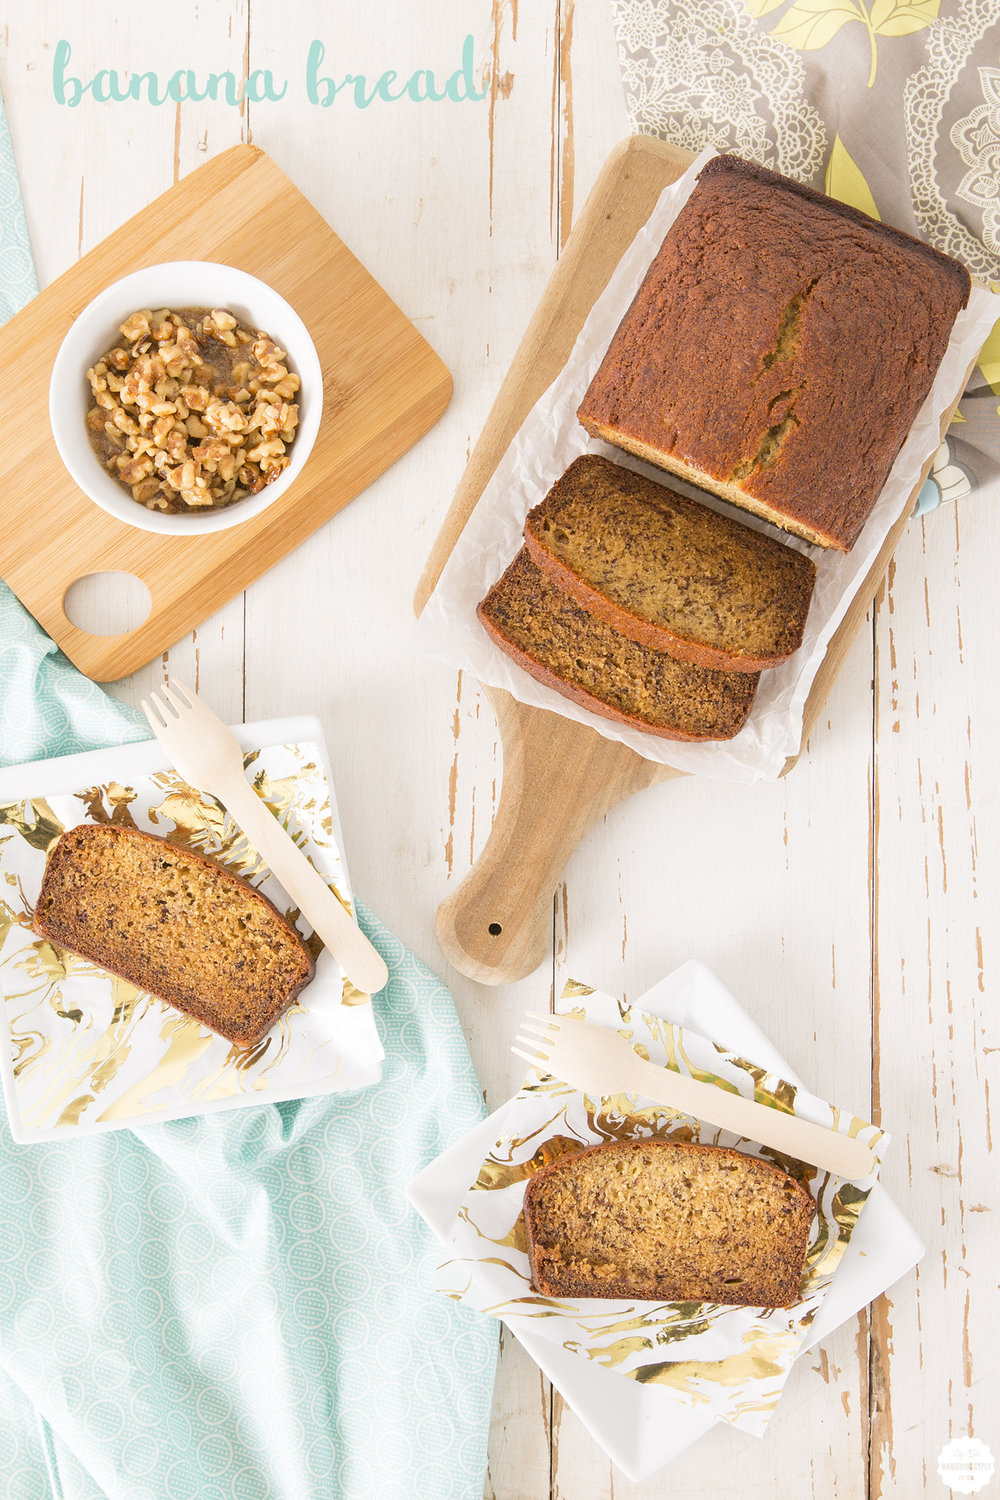 Banana Bread Recipe by Lily The Wandering Gypsy